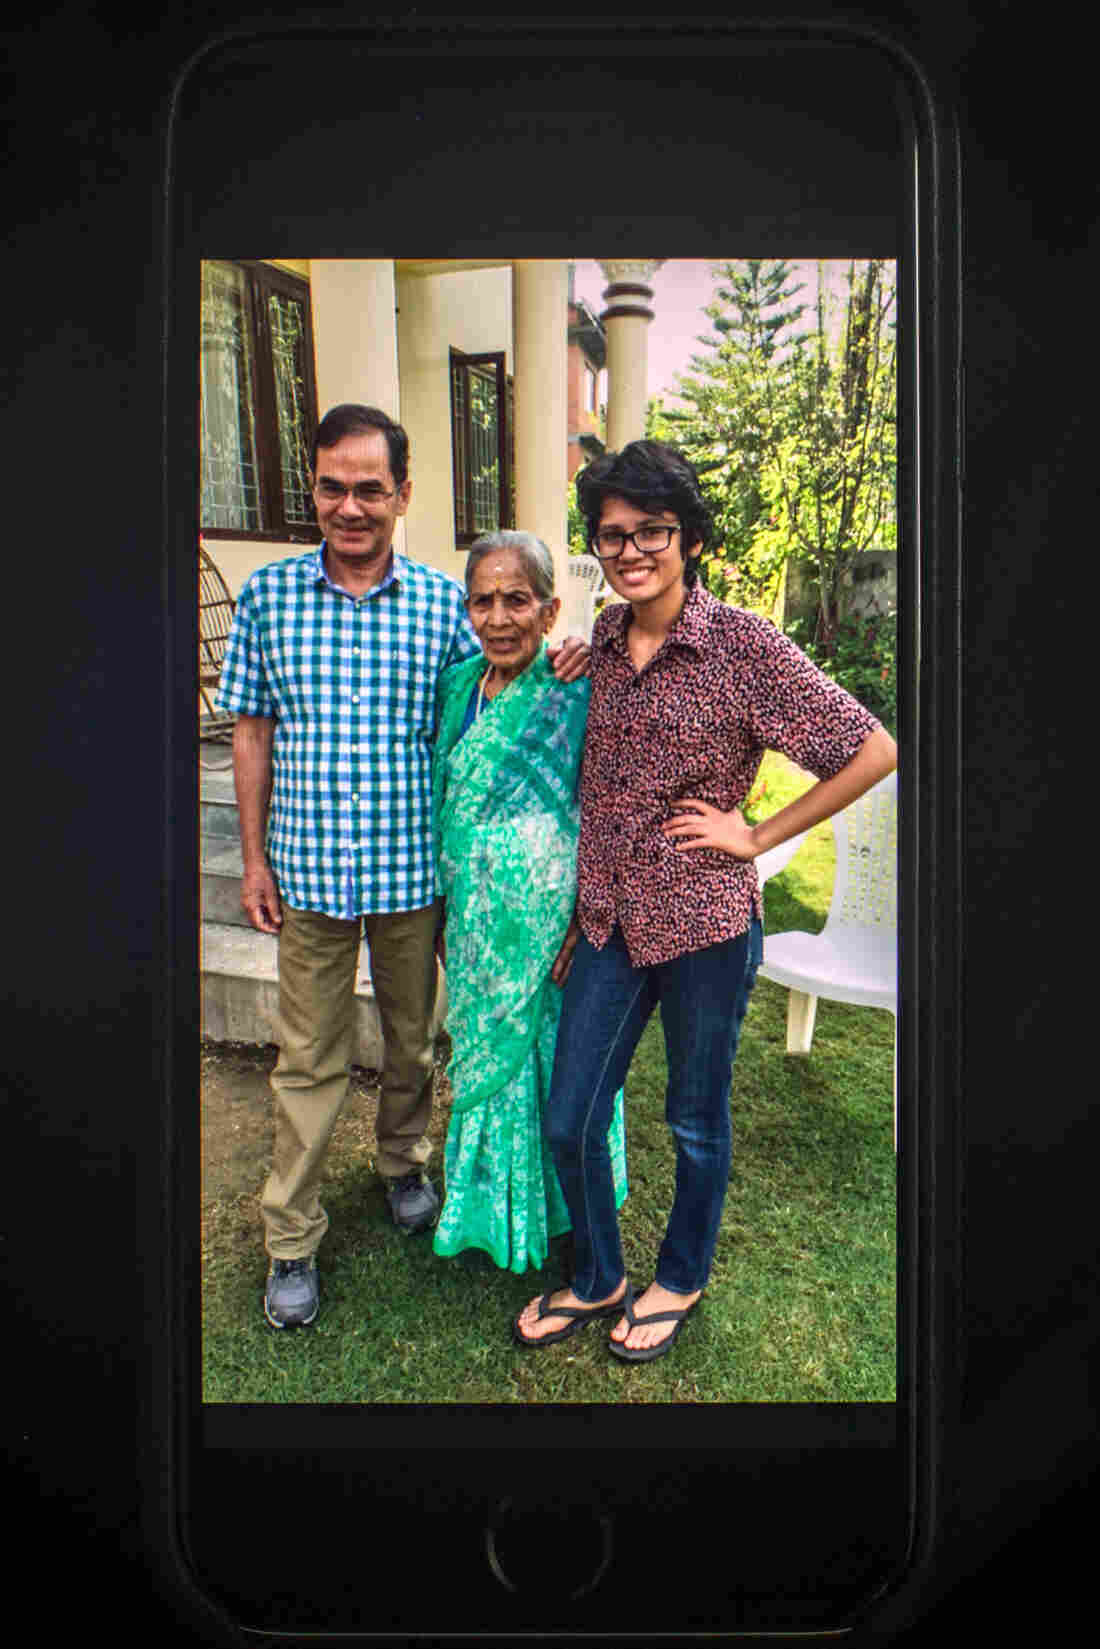 In this family photo, Prakriti Kandel poses with her grandmother and father in their garden.